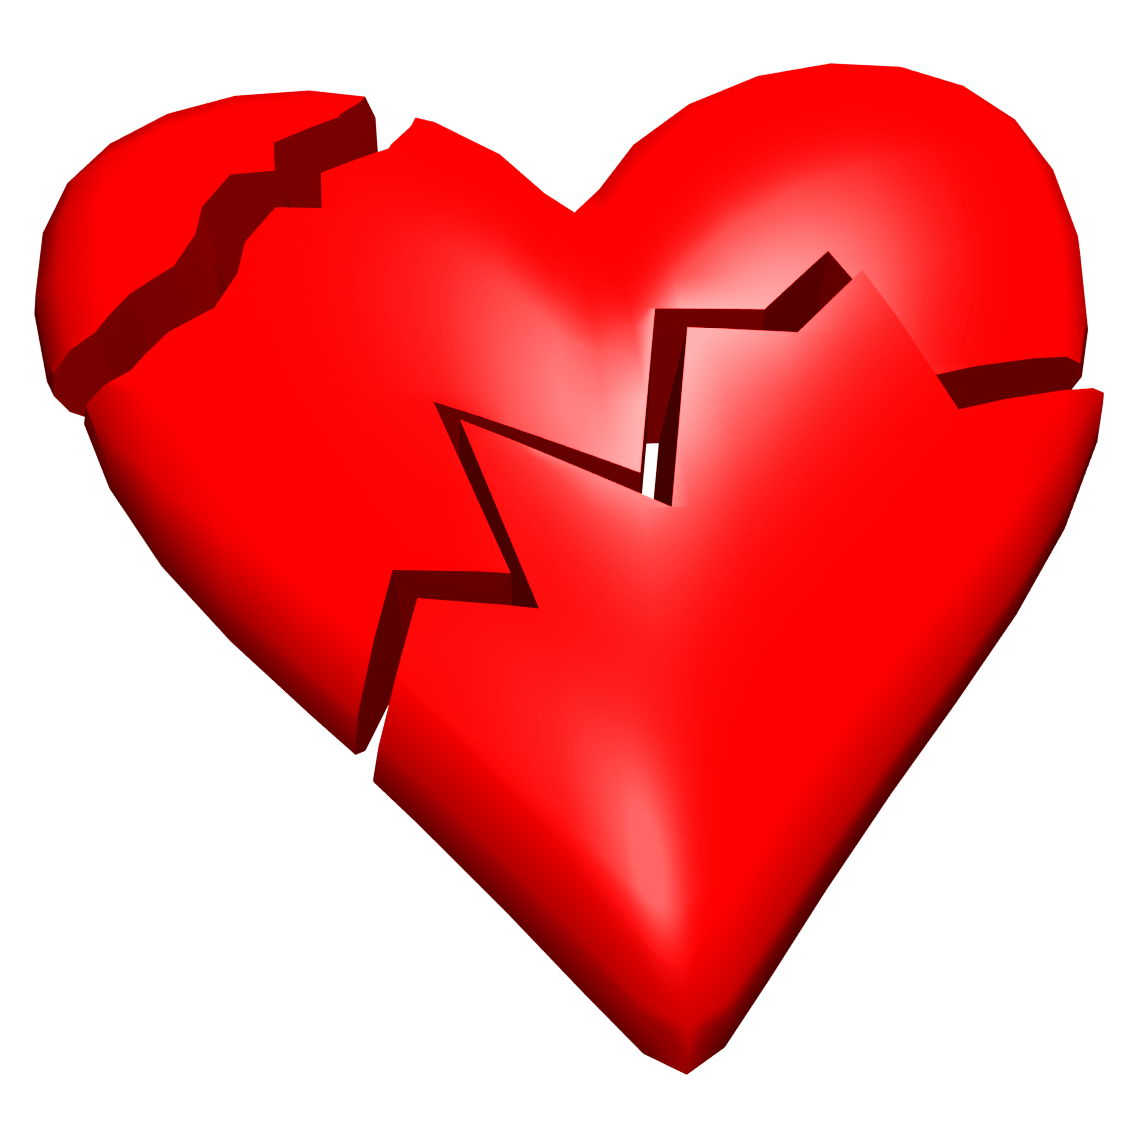 Money heart breaking clipart vector black and white download The Step-Mother's Broken Heart   Life in the Step-Motherhood vector black and white download